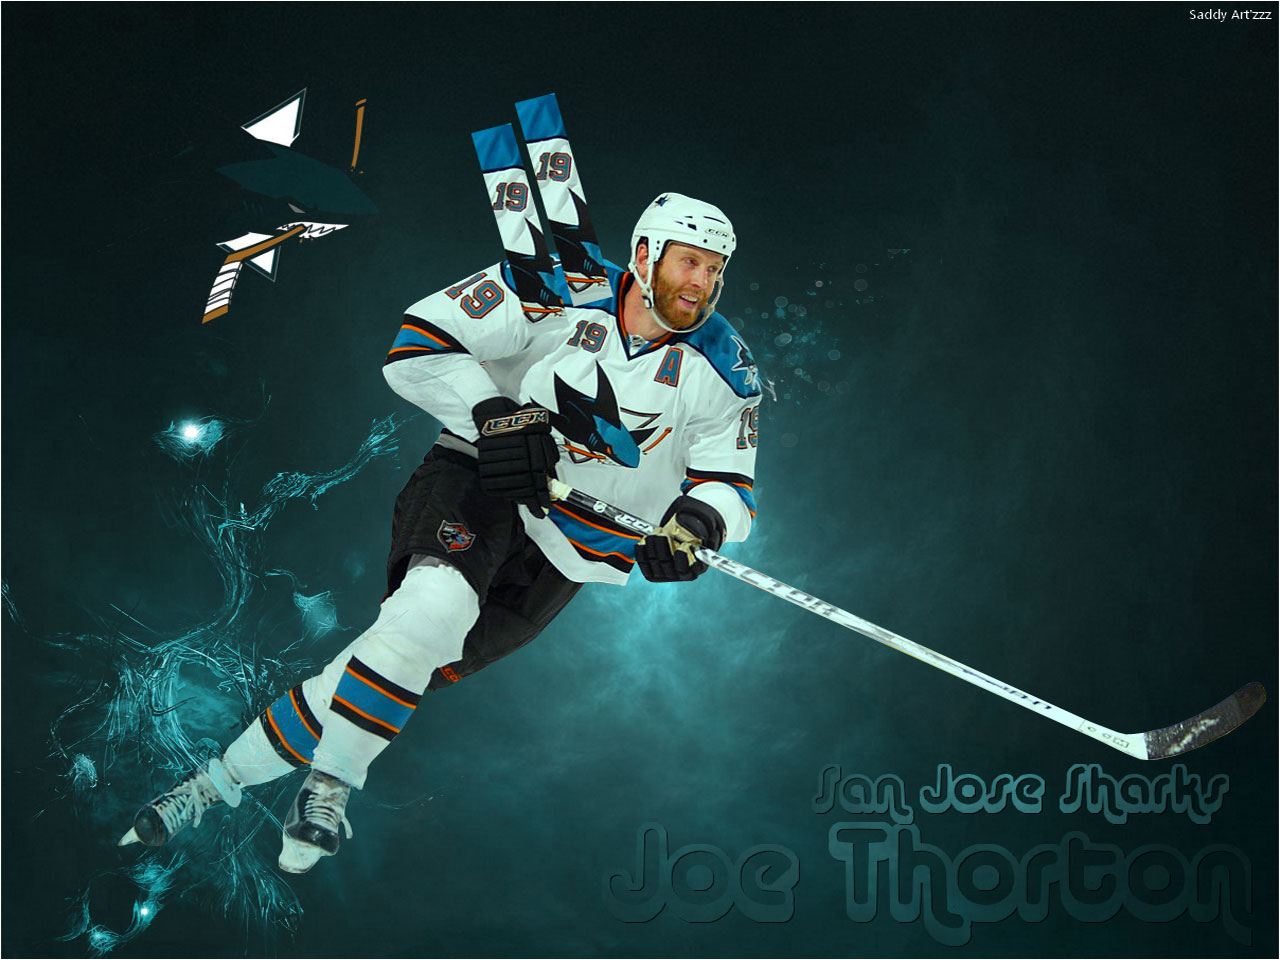 Download Nhl Wallpapers Joe Thornton San Jose Sharks Wallpaper 1280x960